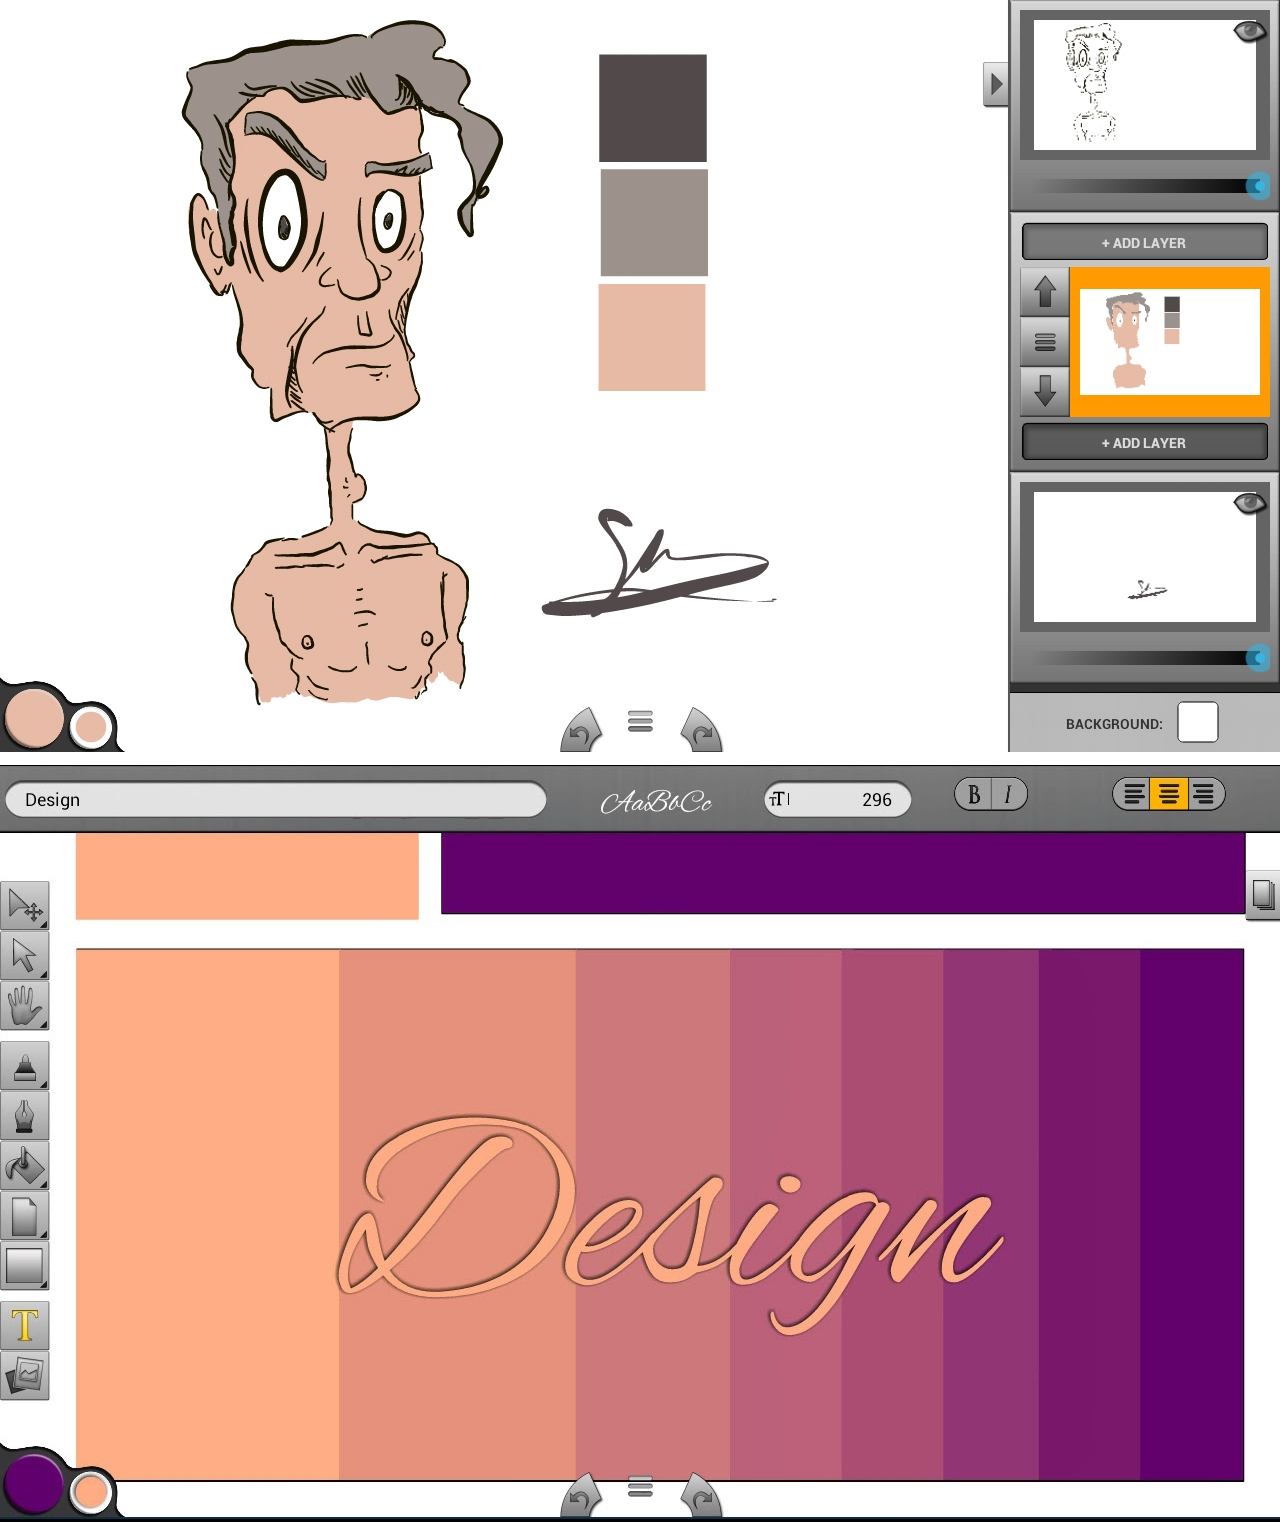 The 5 best Android apps for designers - Digital Arts